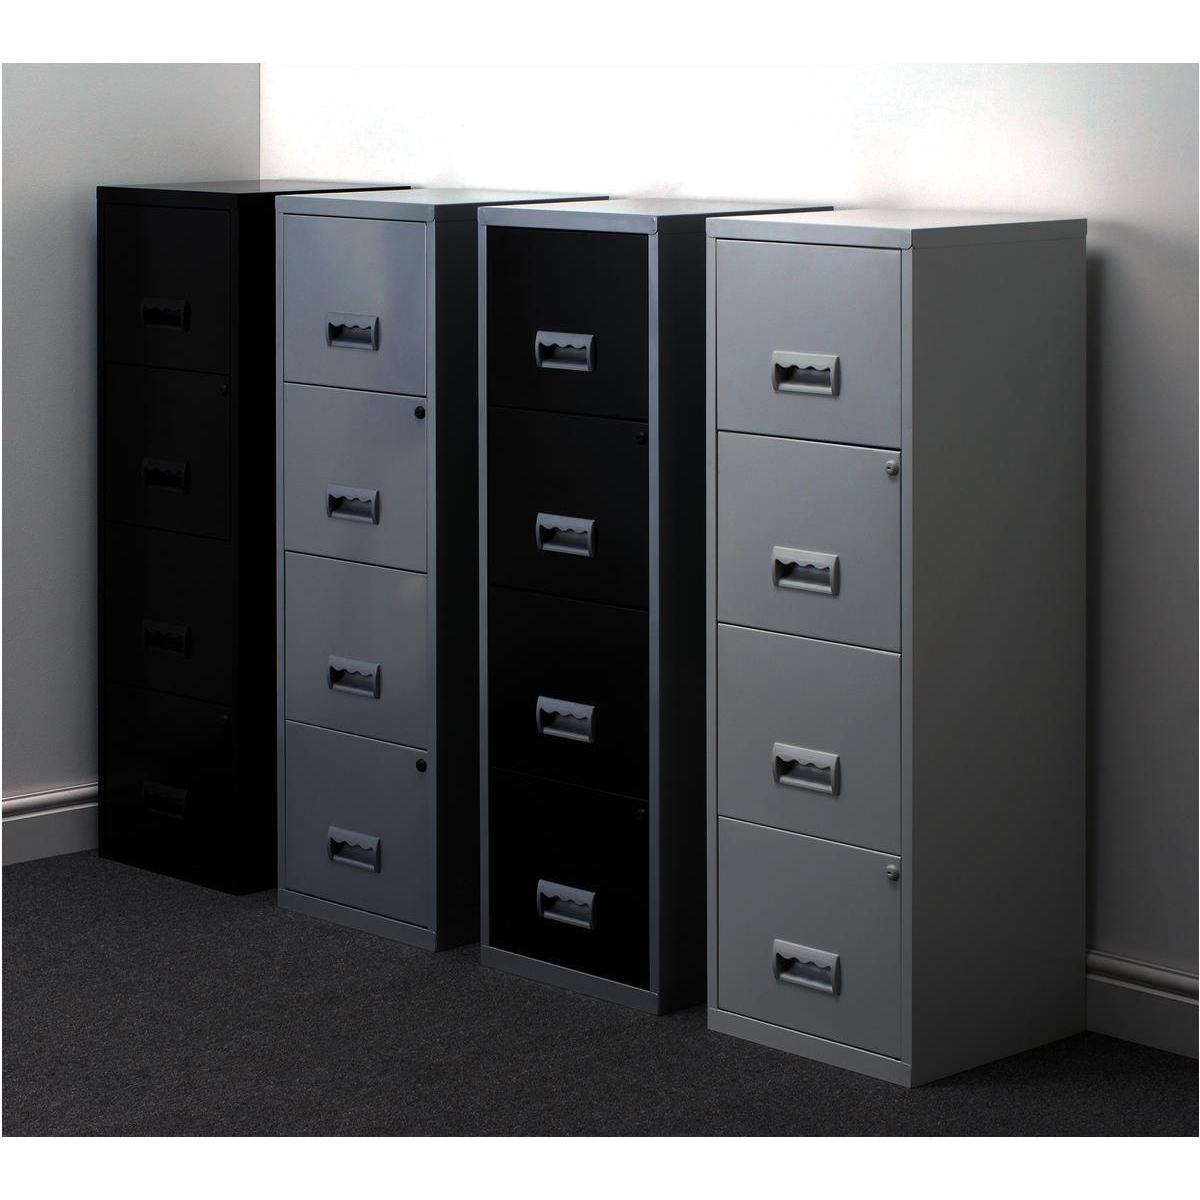 Filing Cabinet Steel 4 Drawer A4 400x400x1250mm Ref 95809